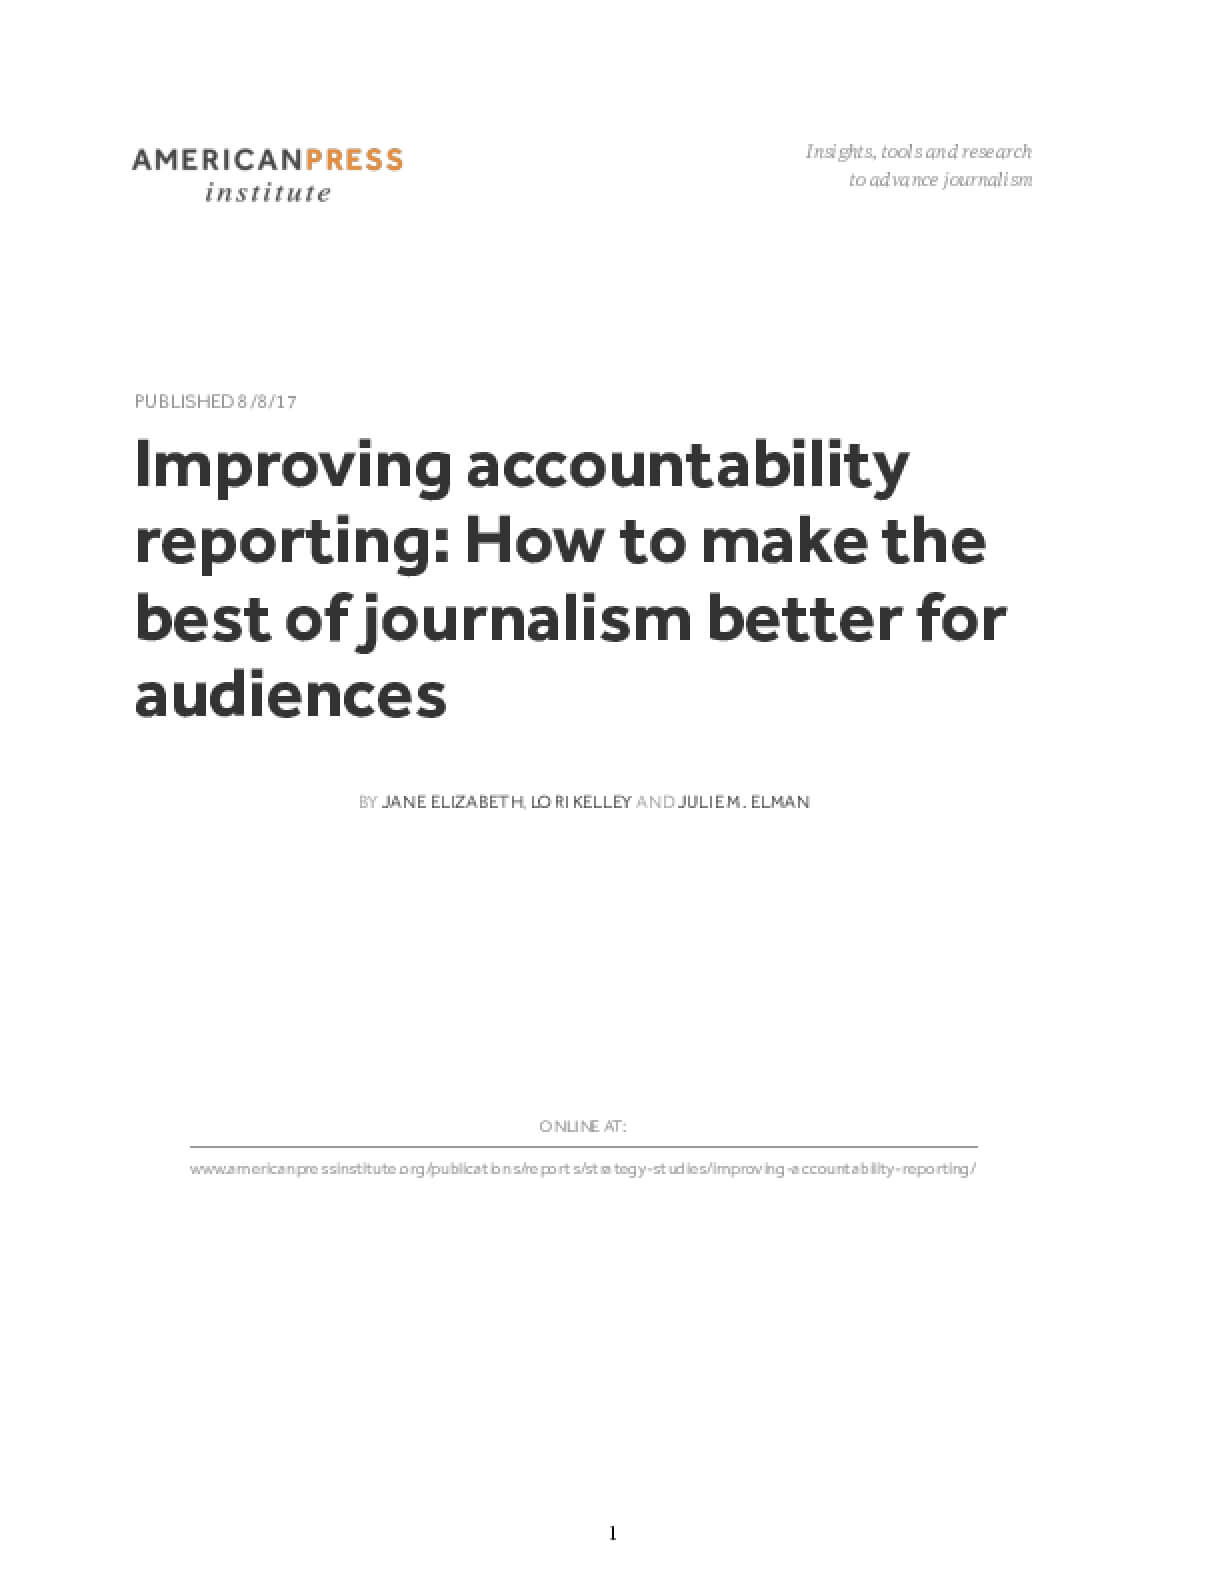 Improving accountability reporting: How to make the best of journalism better for audiences